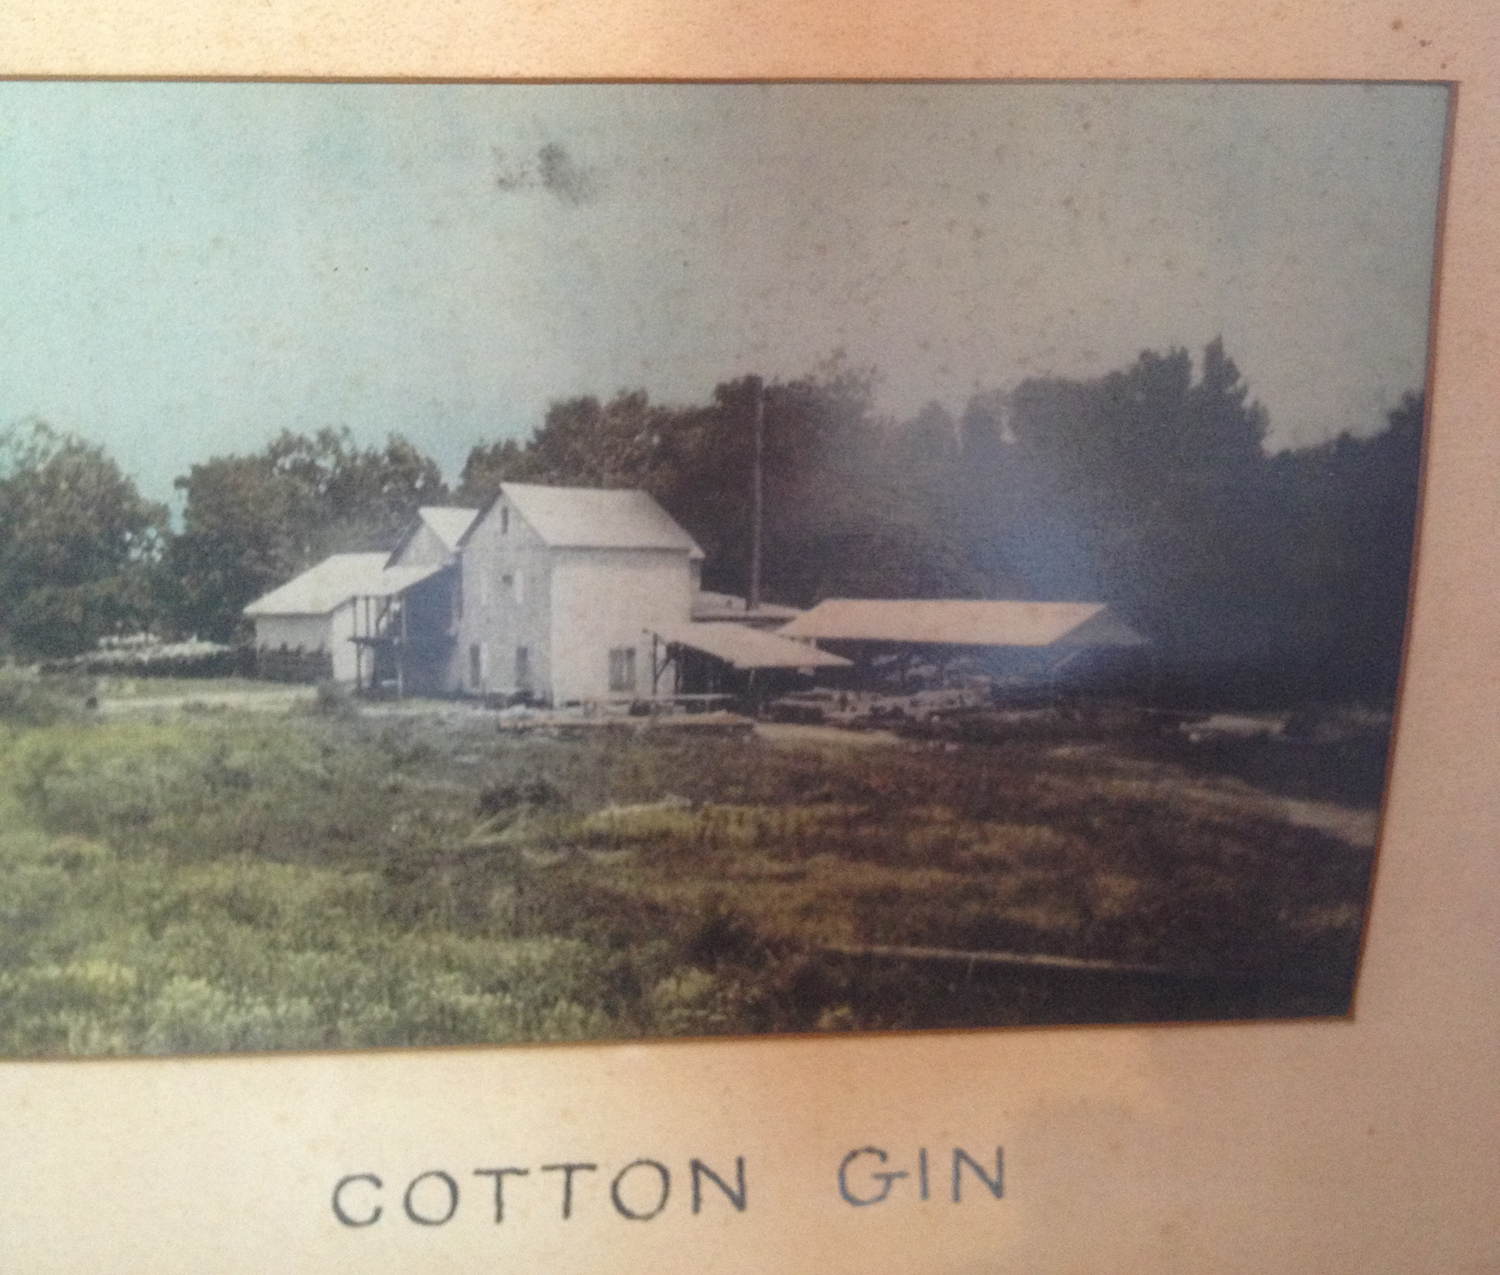 cotton gin essay Although the cotton gin has had many positive effects on the economy of the south, it also had negative effects for the slaves especially in the south.